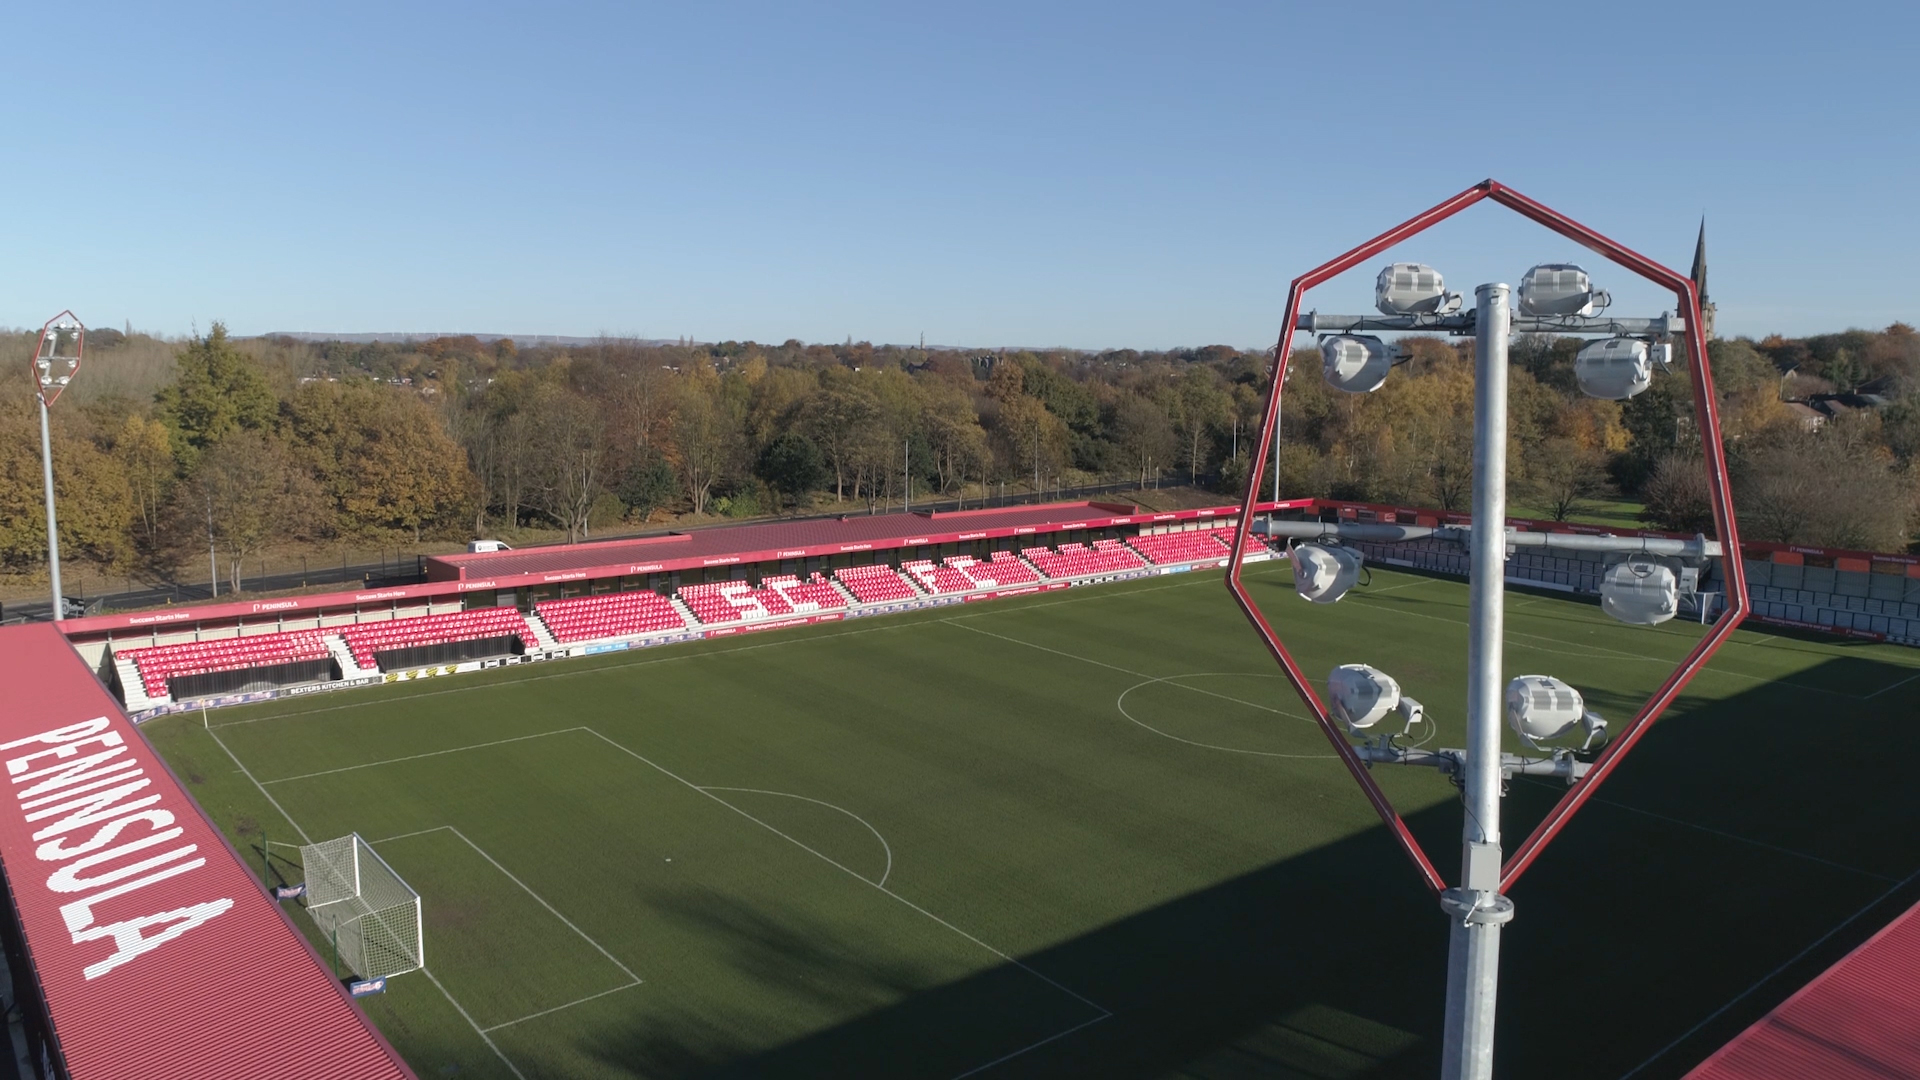 Salford city vs notts county betting lines